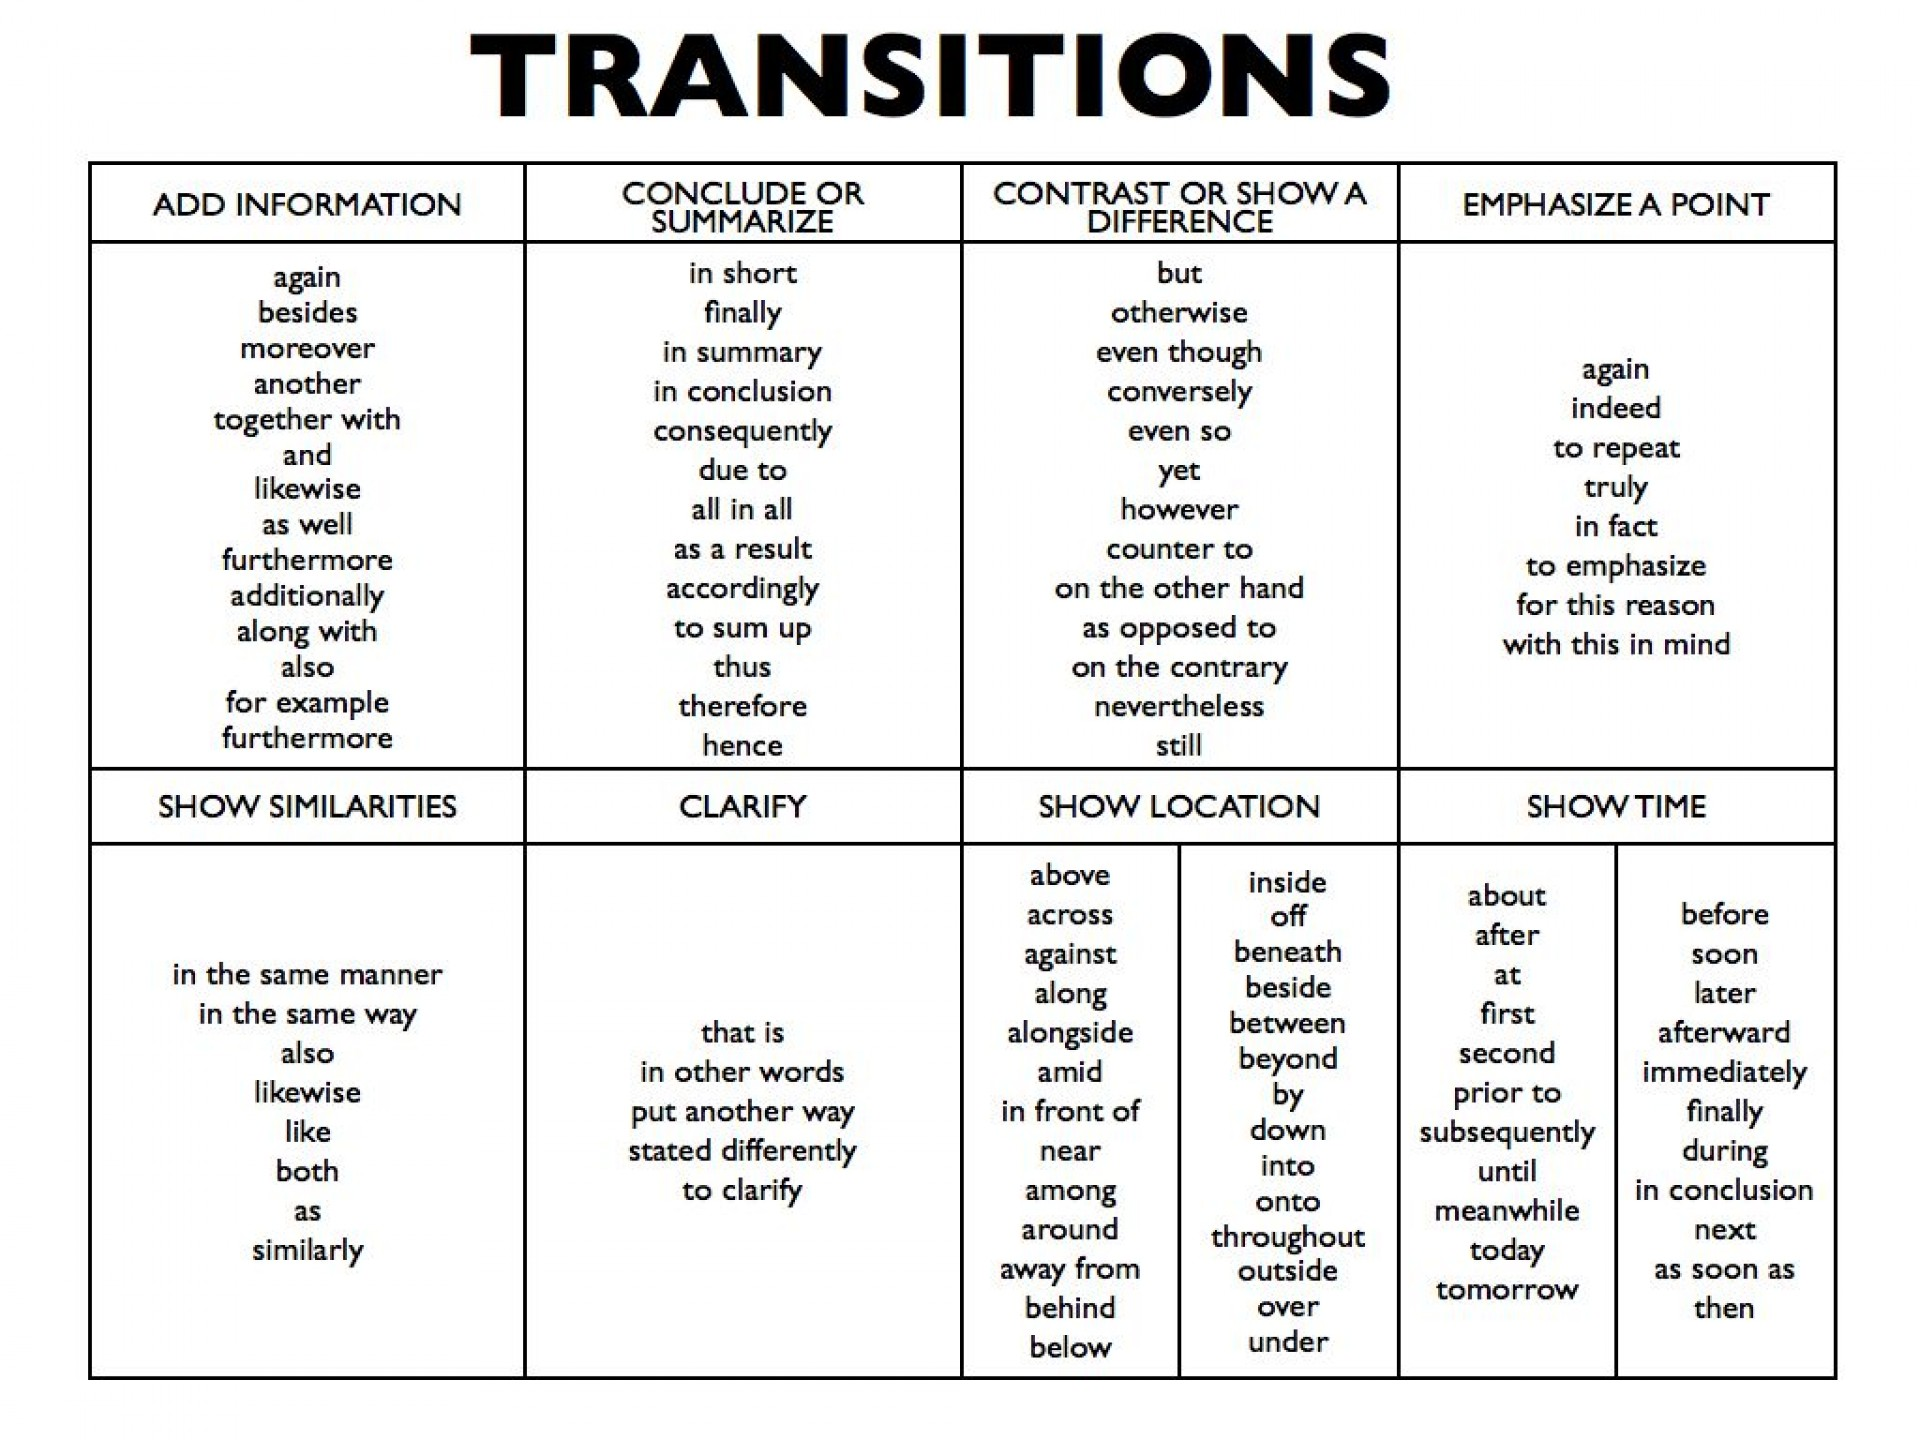 005 Essay Example Transitions 4995883 1 Orig Archaicawful Writing Transition Words Pdf Conclusion In Spanish 1920